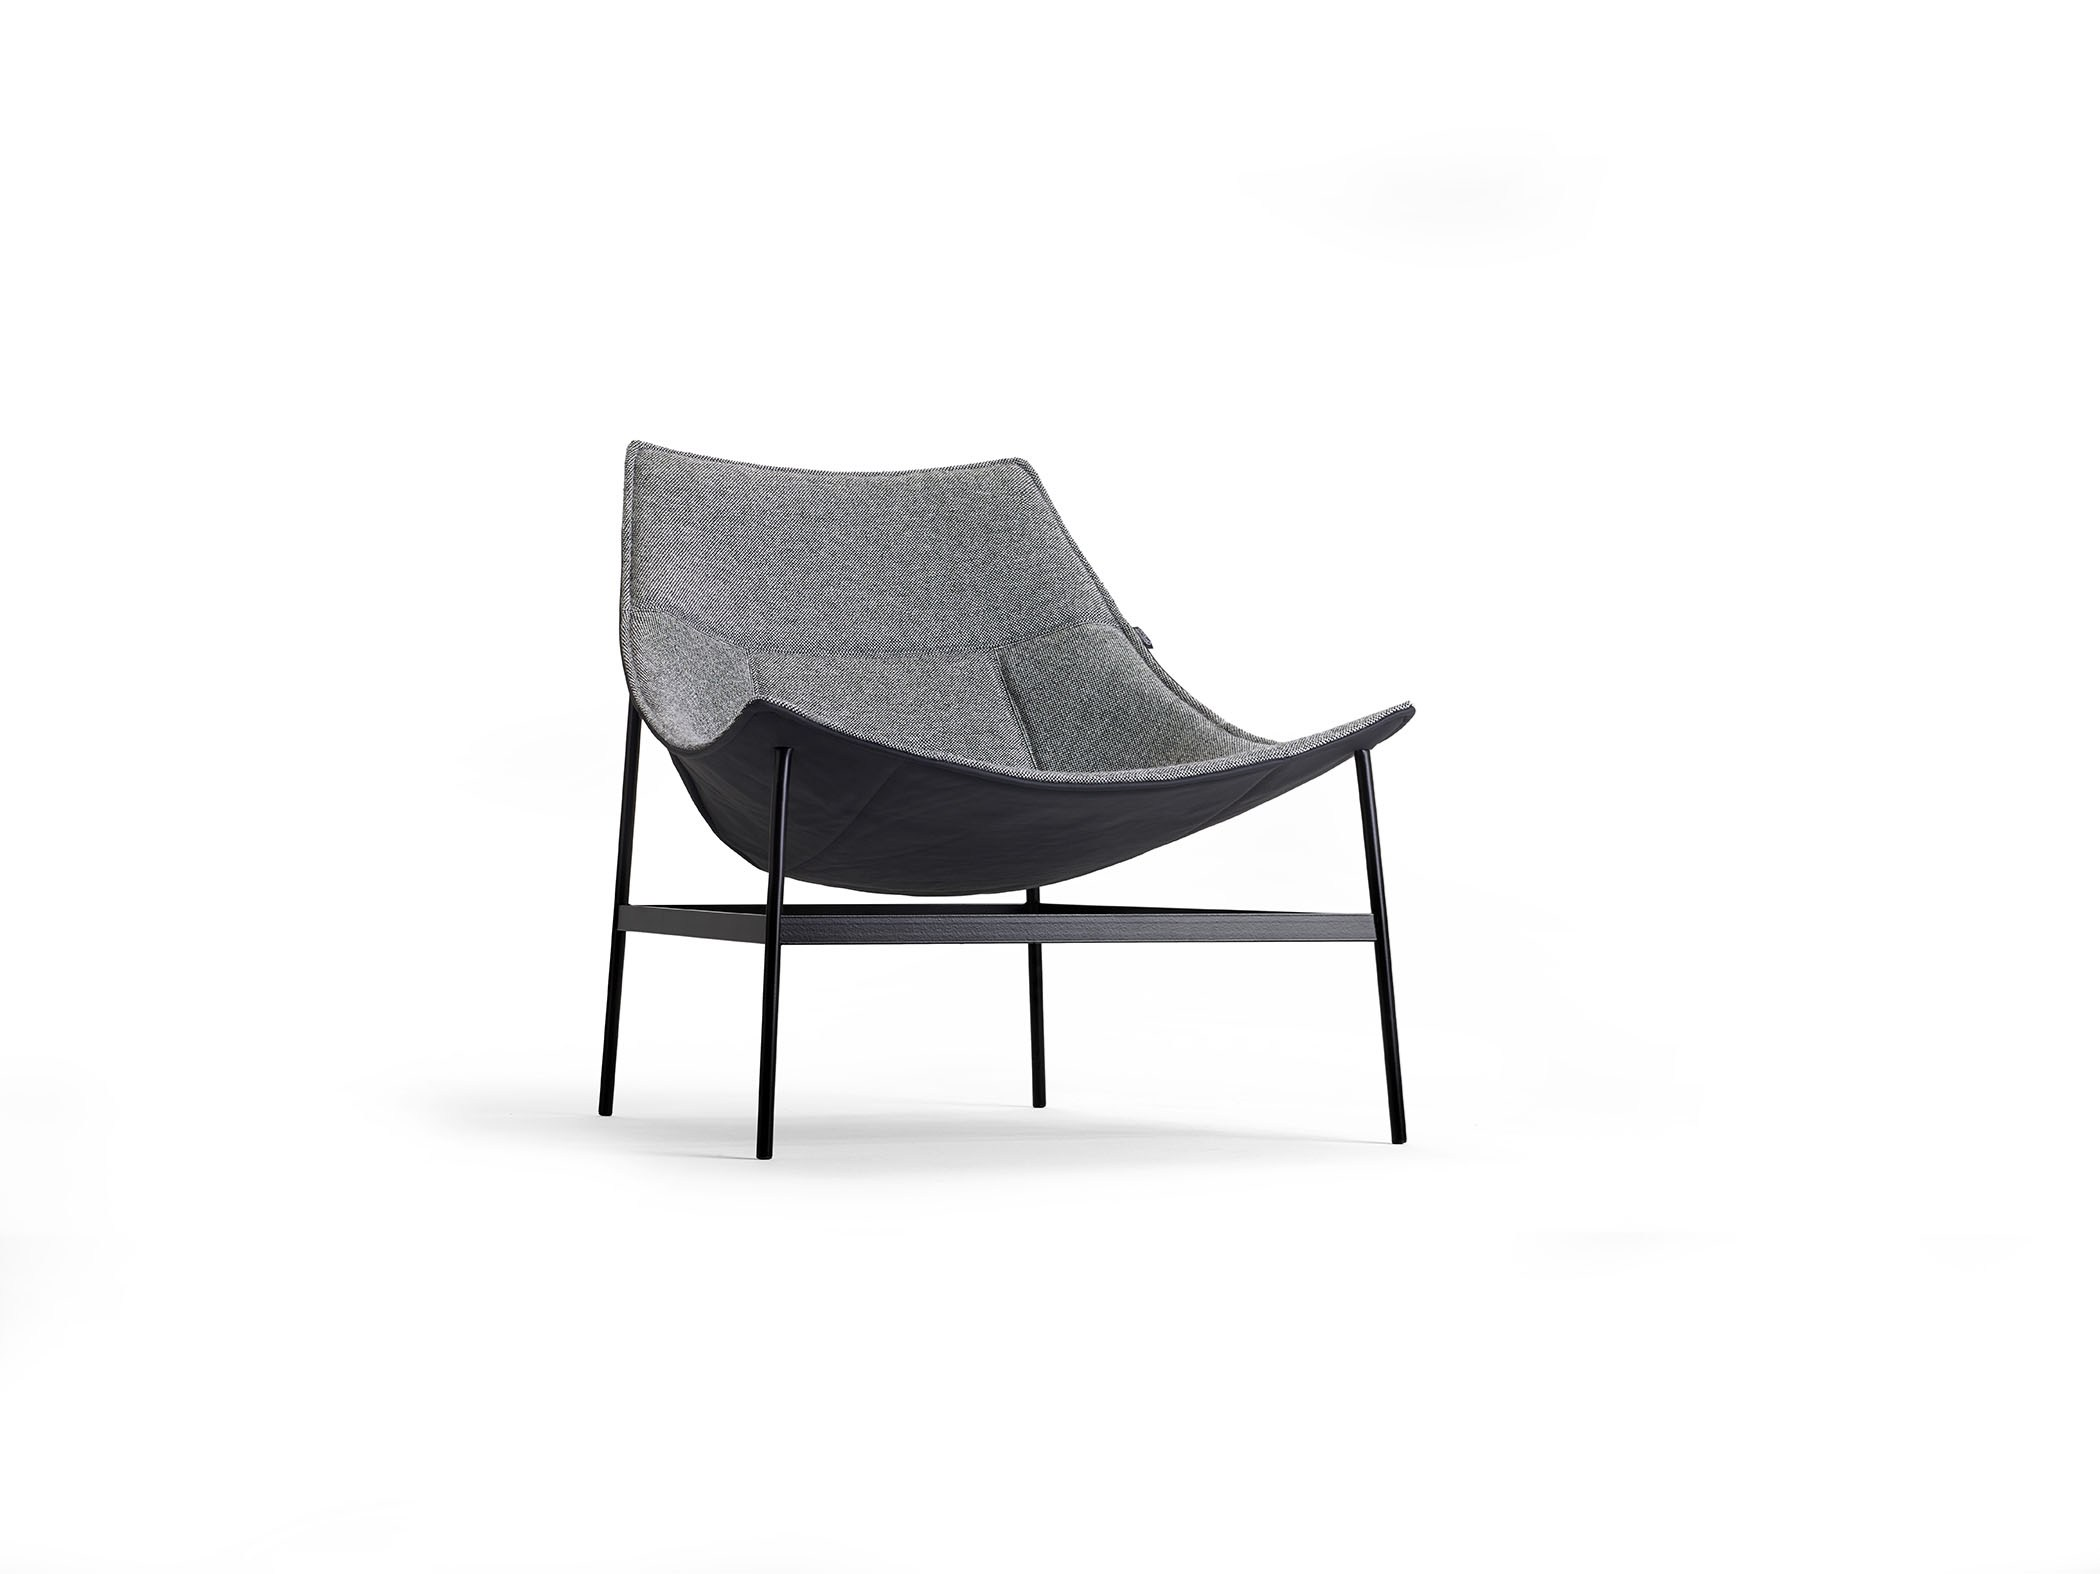 Montparnasse Lounge Chair by Christophe Pillet for Offecct